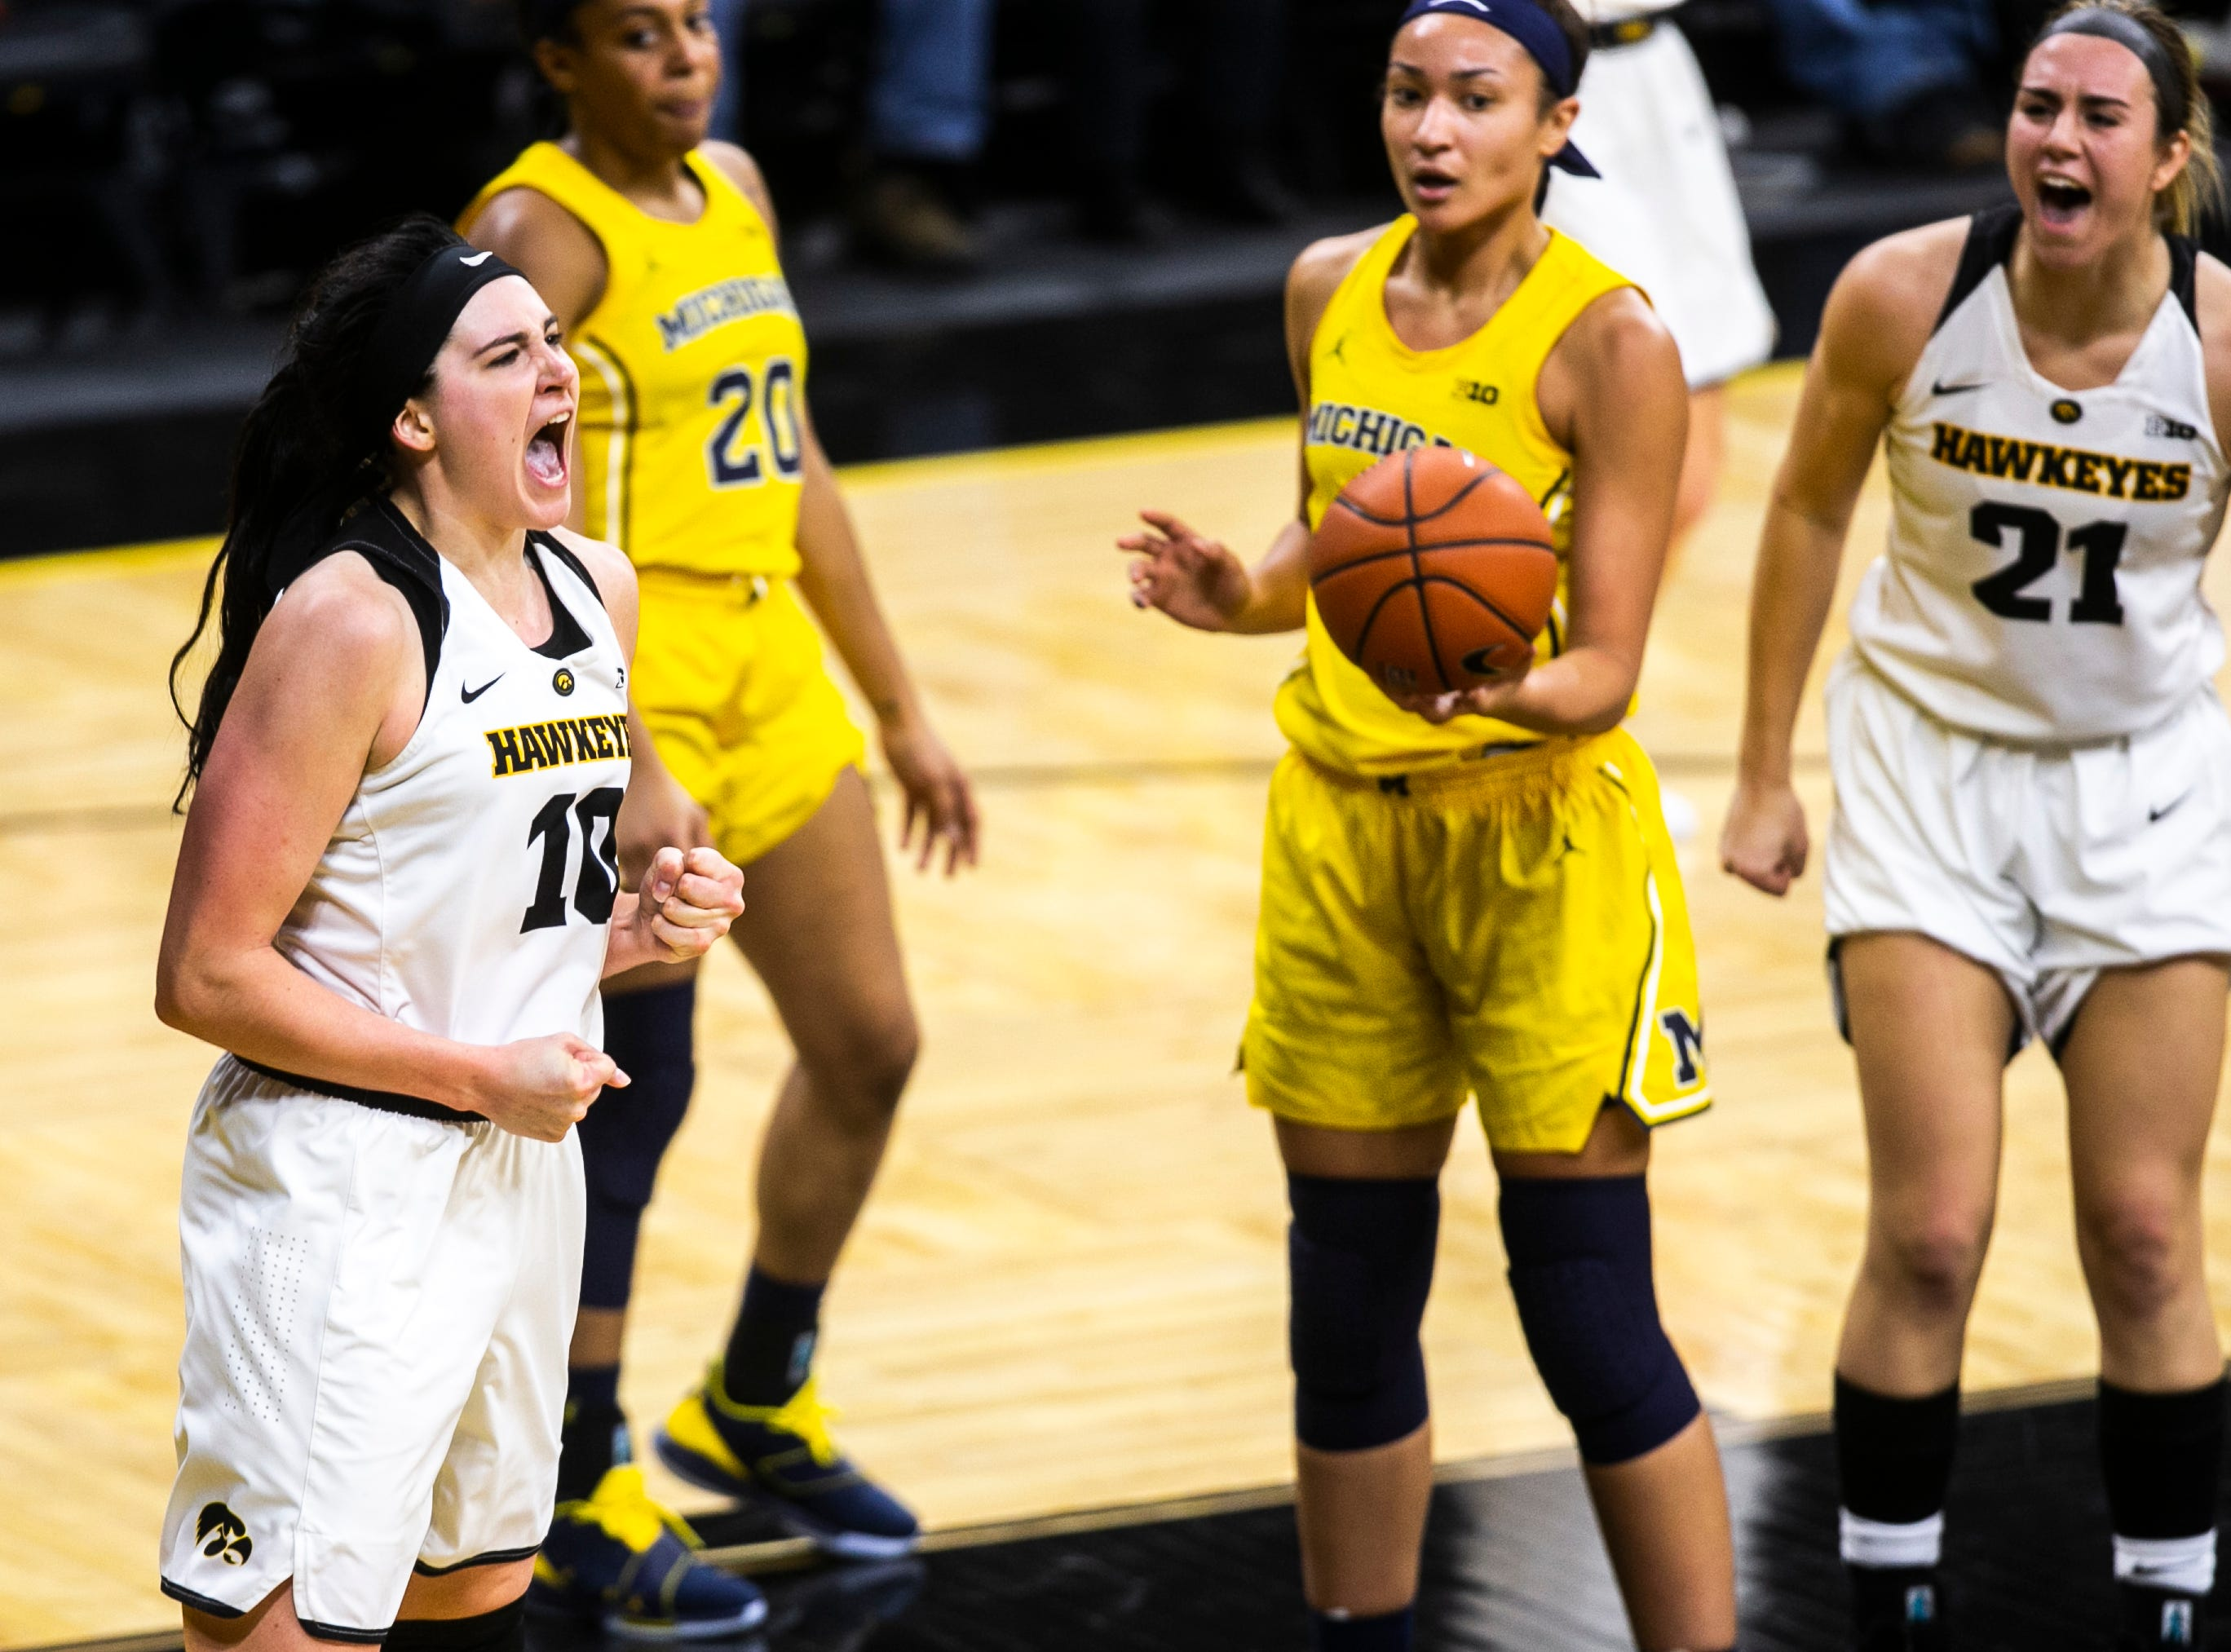 Iowa forward Megan Gustafson (10) celebrates after drawing a foul during a NCAA Big Ten Conference women's basketball game on Thursday, Jan. 17, 2019, at Carver-Hawkeye Arena in Iowa City, Iowa.